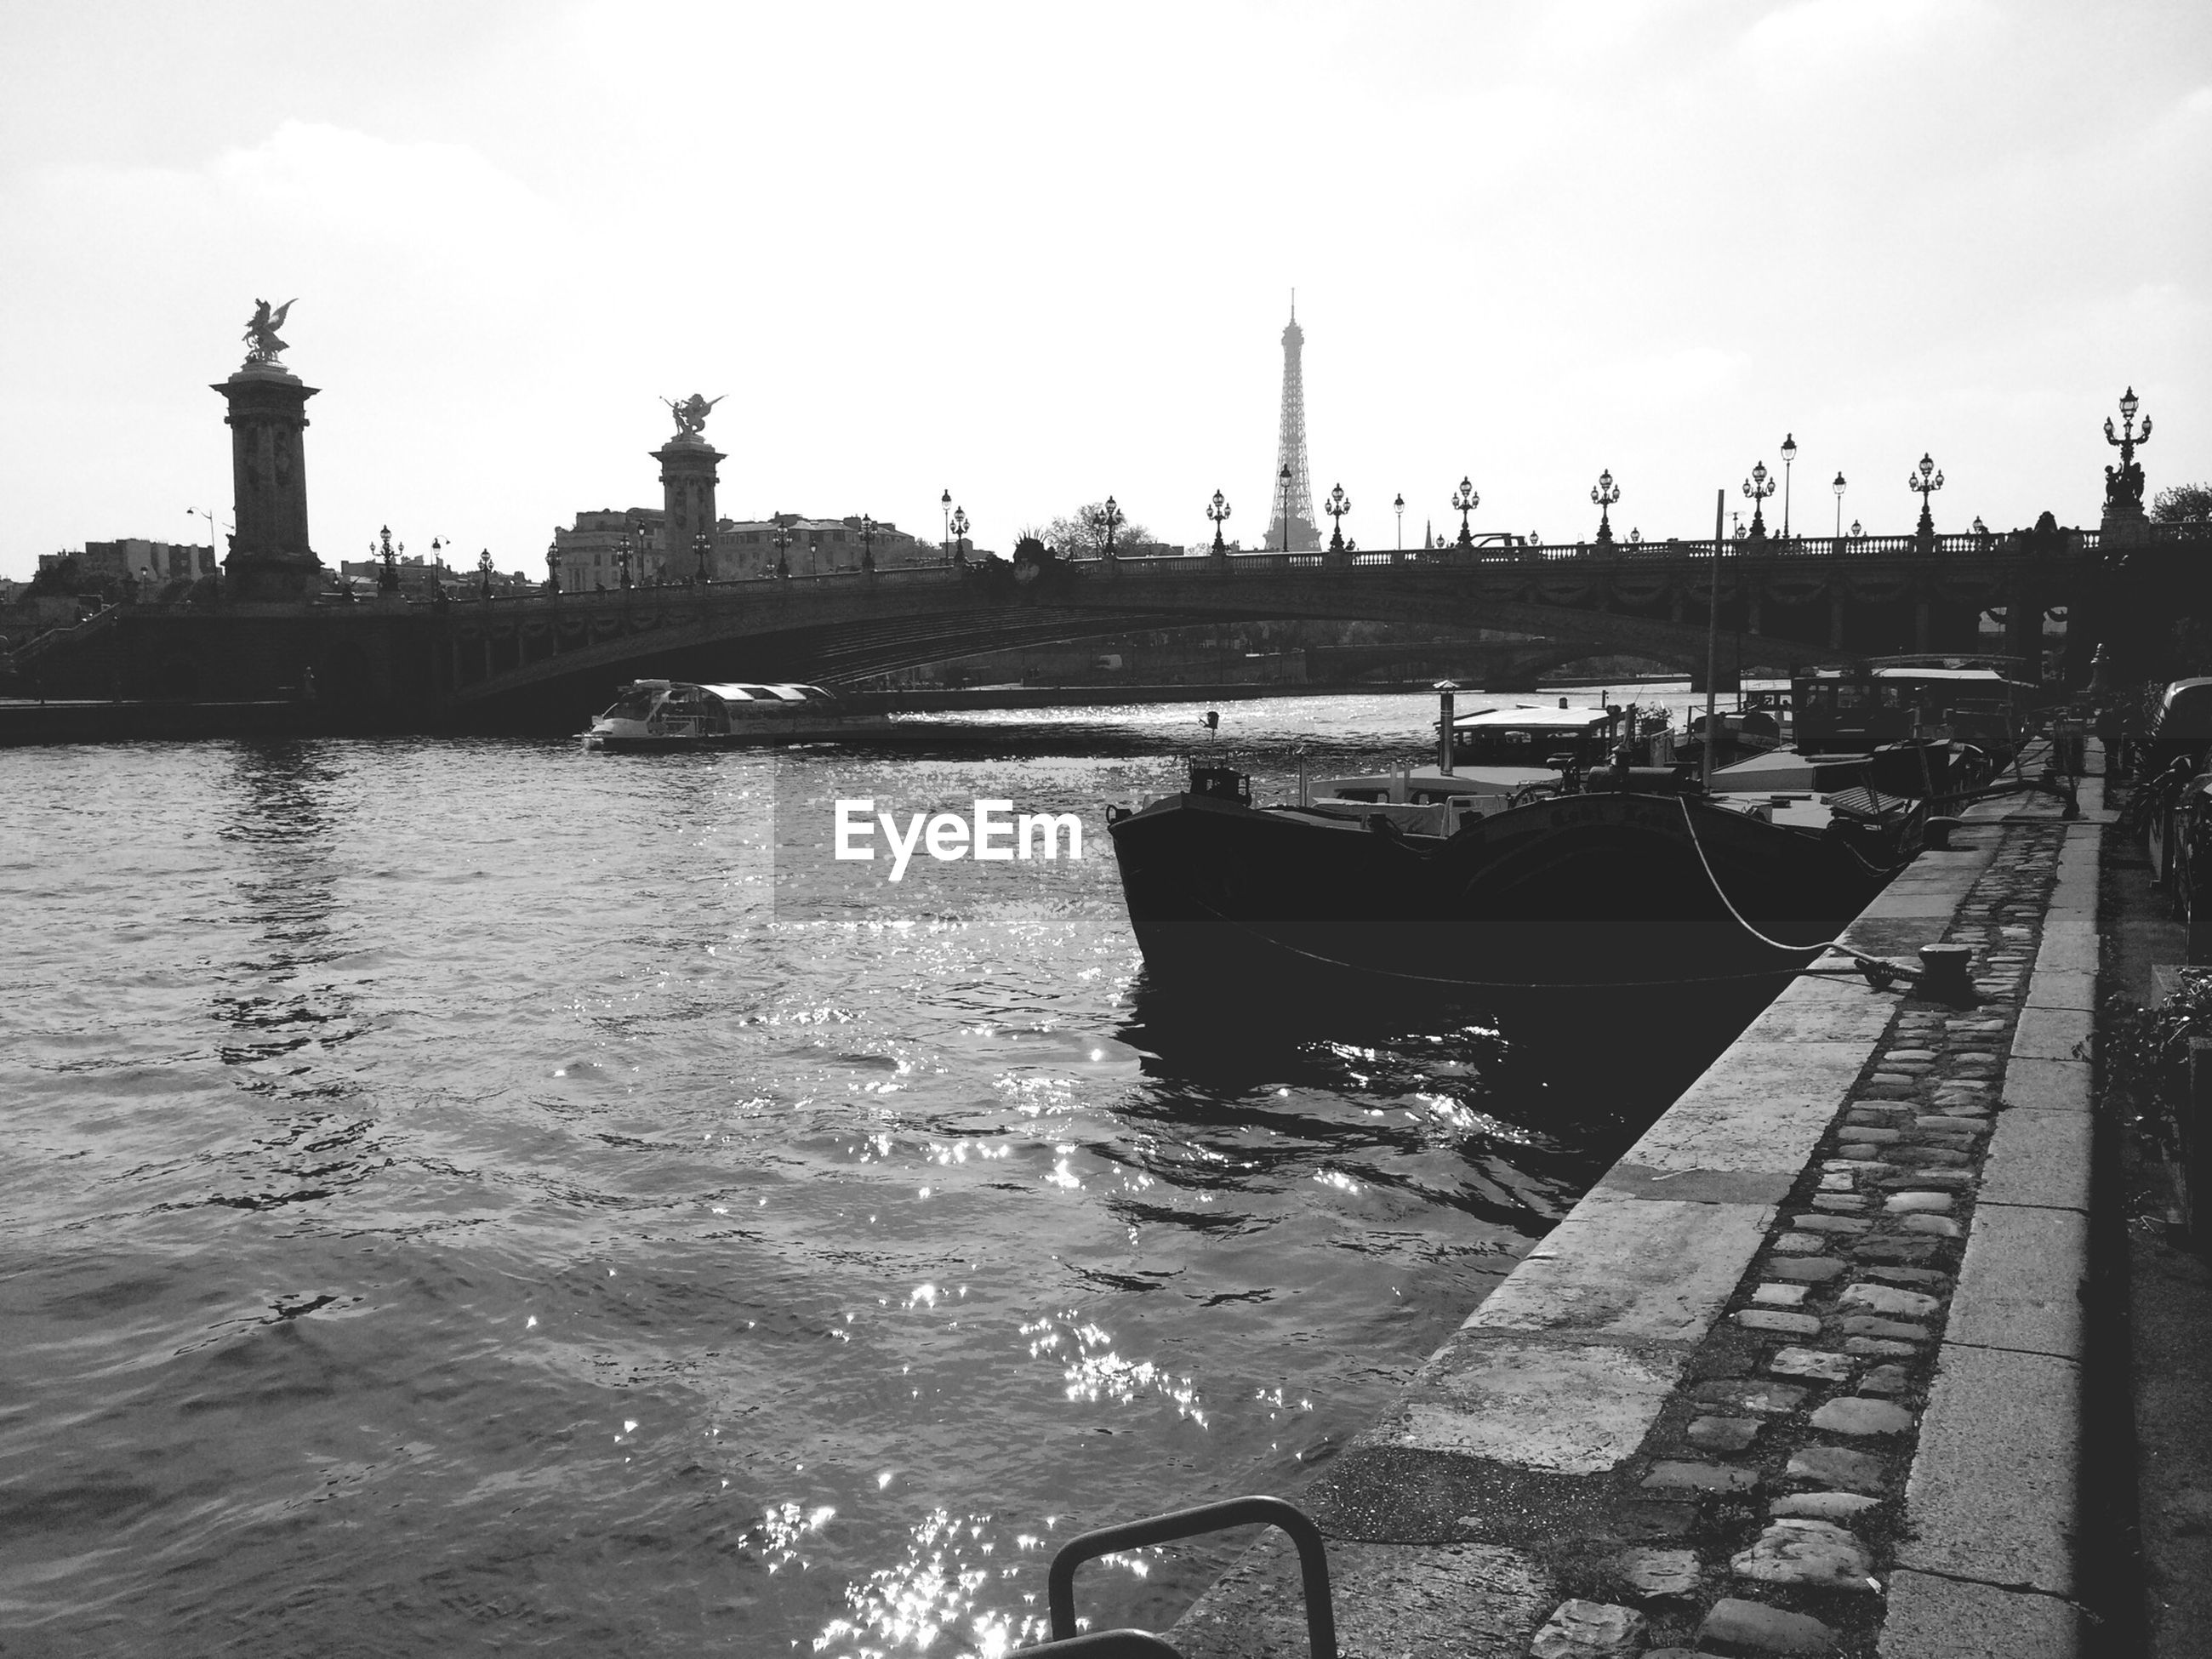 View of river and eiffel tower in background